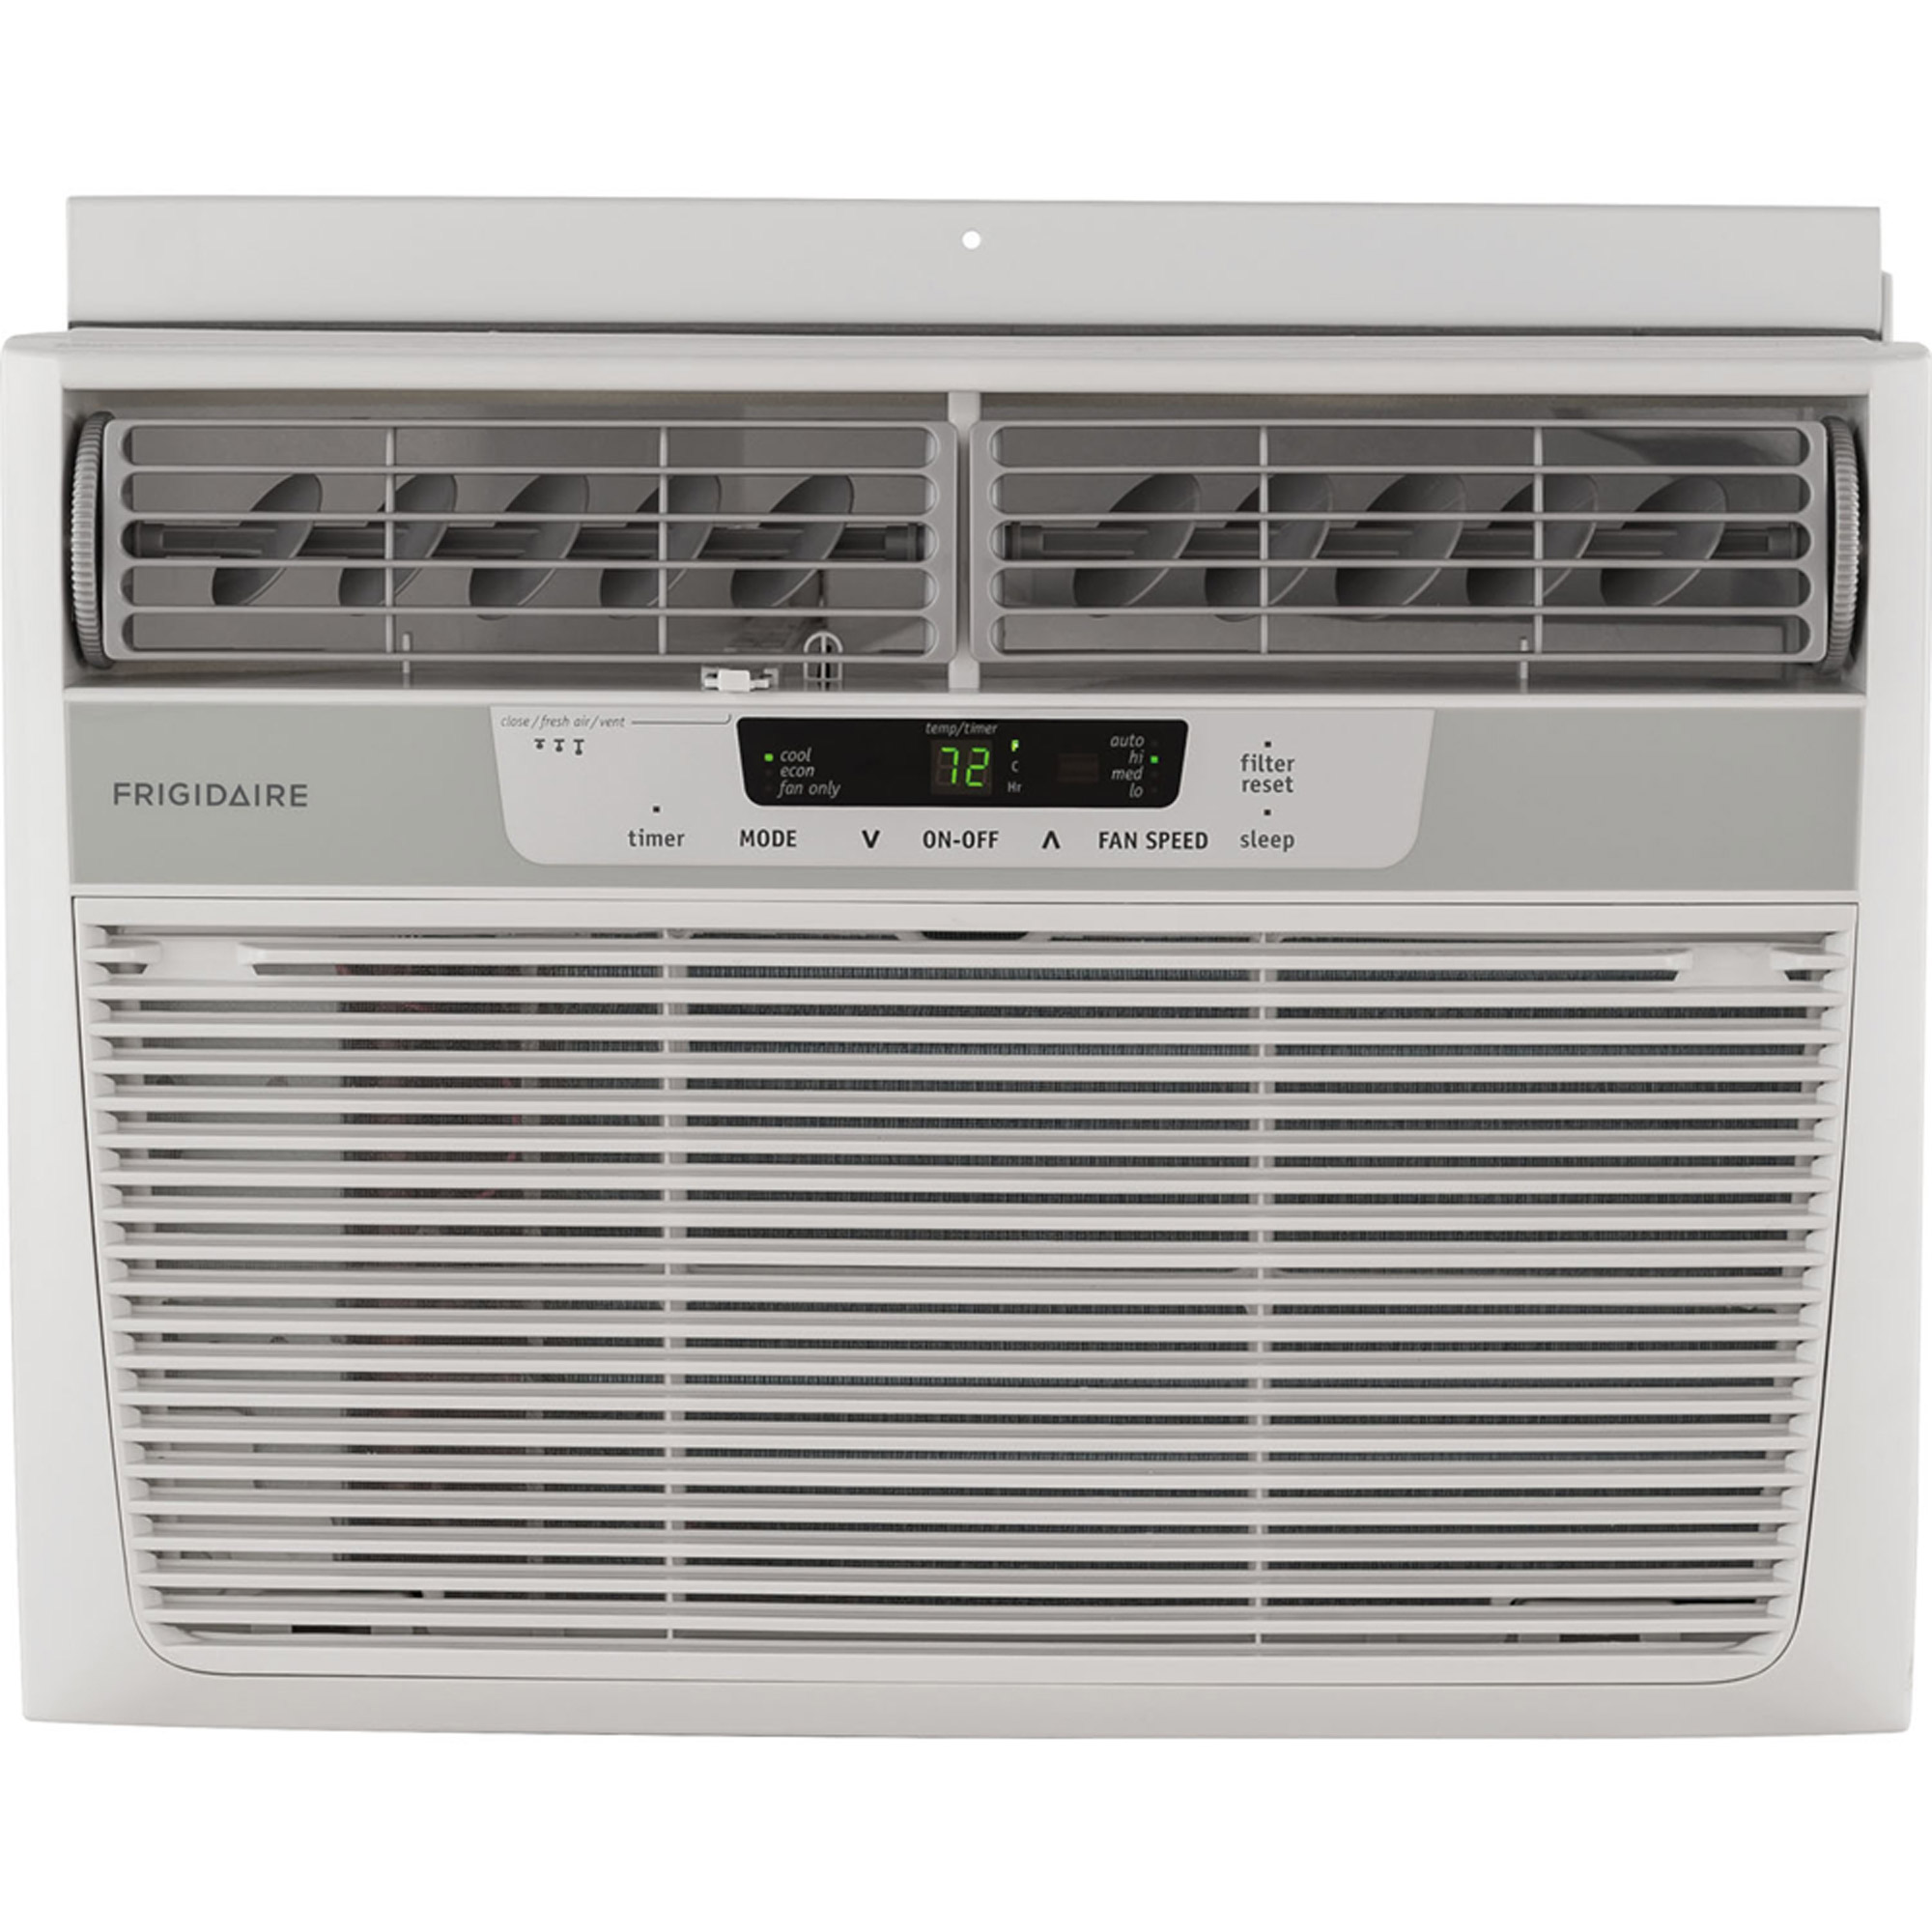 Frigidaire FFRA1222R1 12,000-BTU 115V Window Mounted Compact Air Conditioner with Remote Control